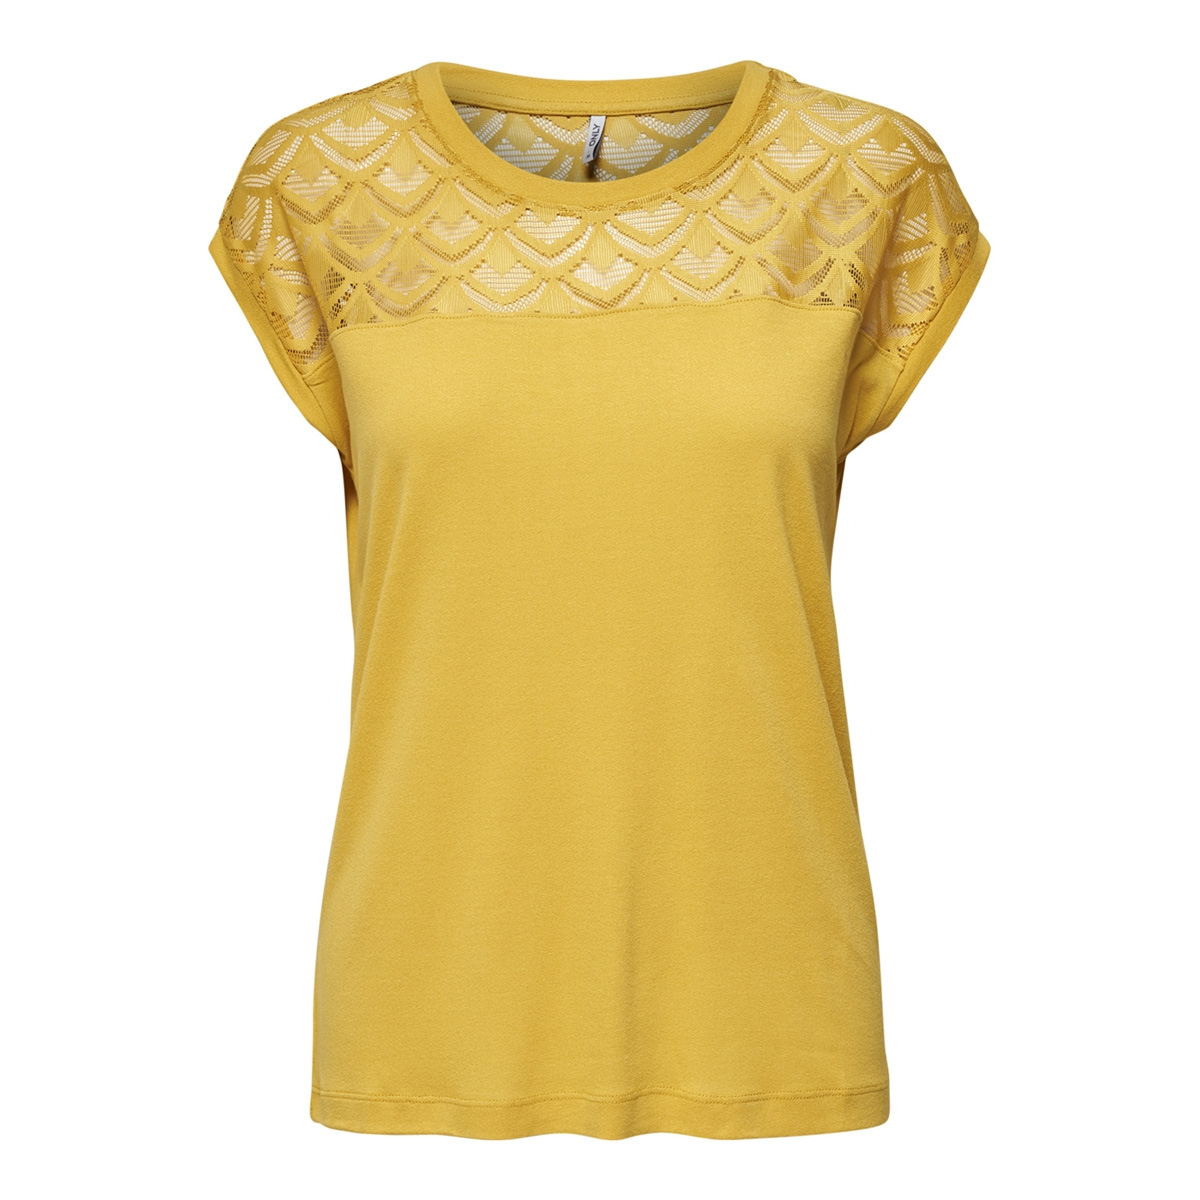 onlnicole s/s mix top noos 15151008 only t-shirt yolk yellow